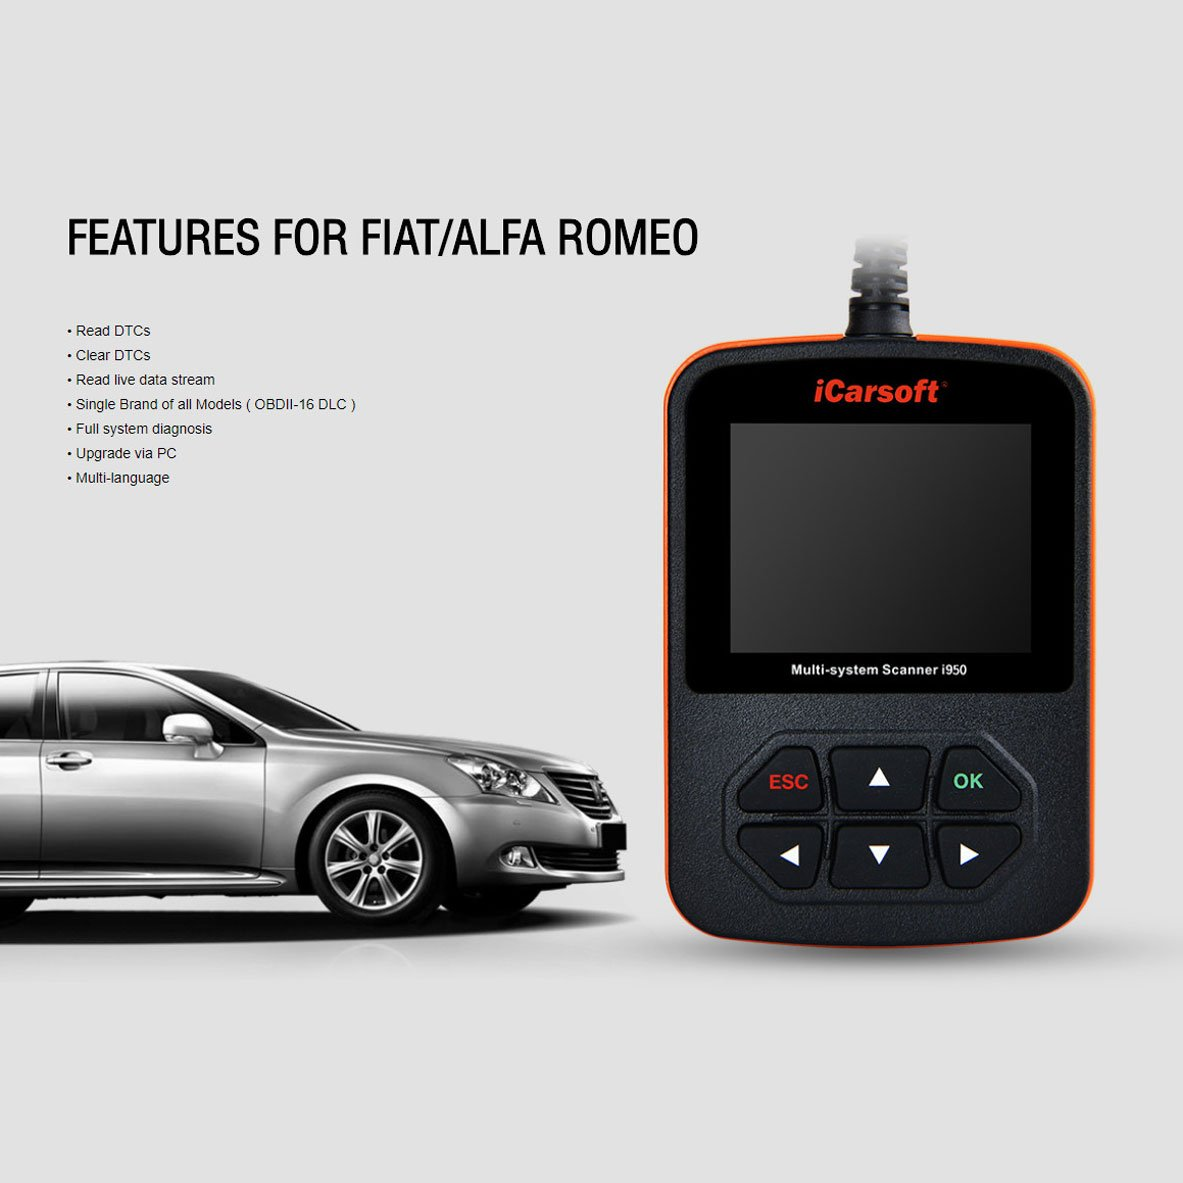 Amazon.com: FIAT and ALFA ROMEO OBD2 DIAGNOSTIC SCANNER TOOL ERASE FAULT CODES - iCARSOFT i950: Automotive